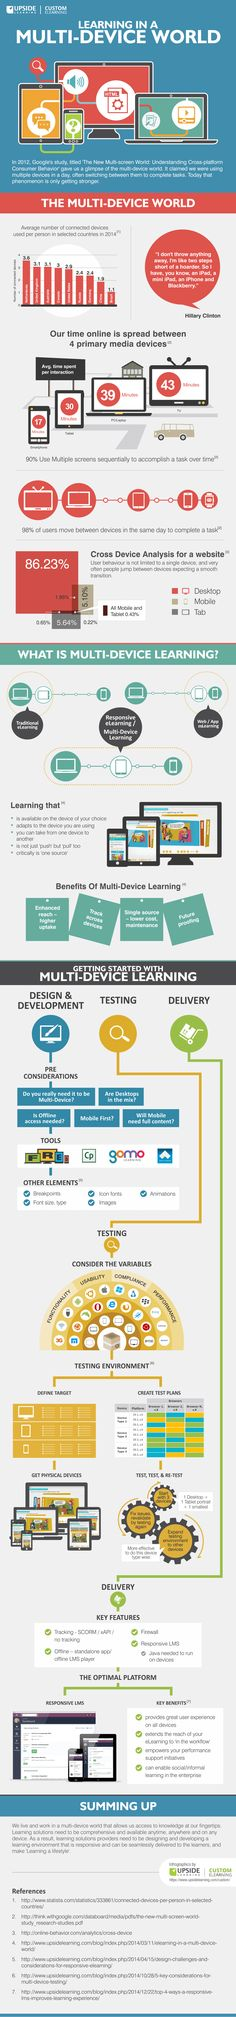 Learning in a Multi-device World Infographic explores the Multidevice World and explains how you can get started with multi-device learning. Get a comprehensive insight into creating, testing and delivering learning across a plethora of devices.